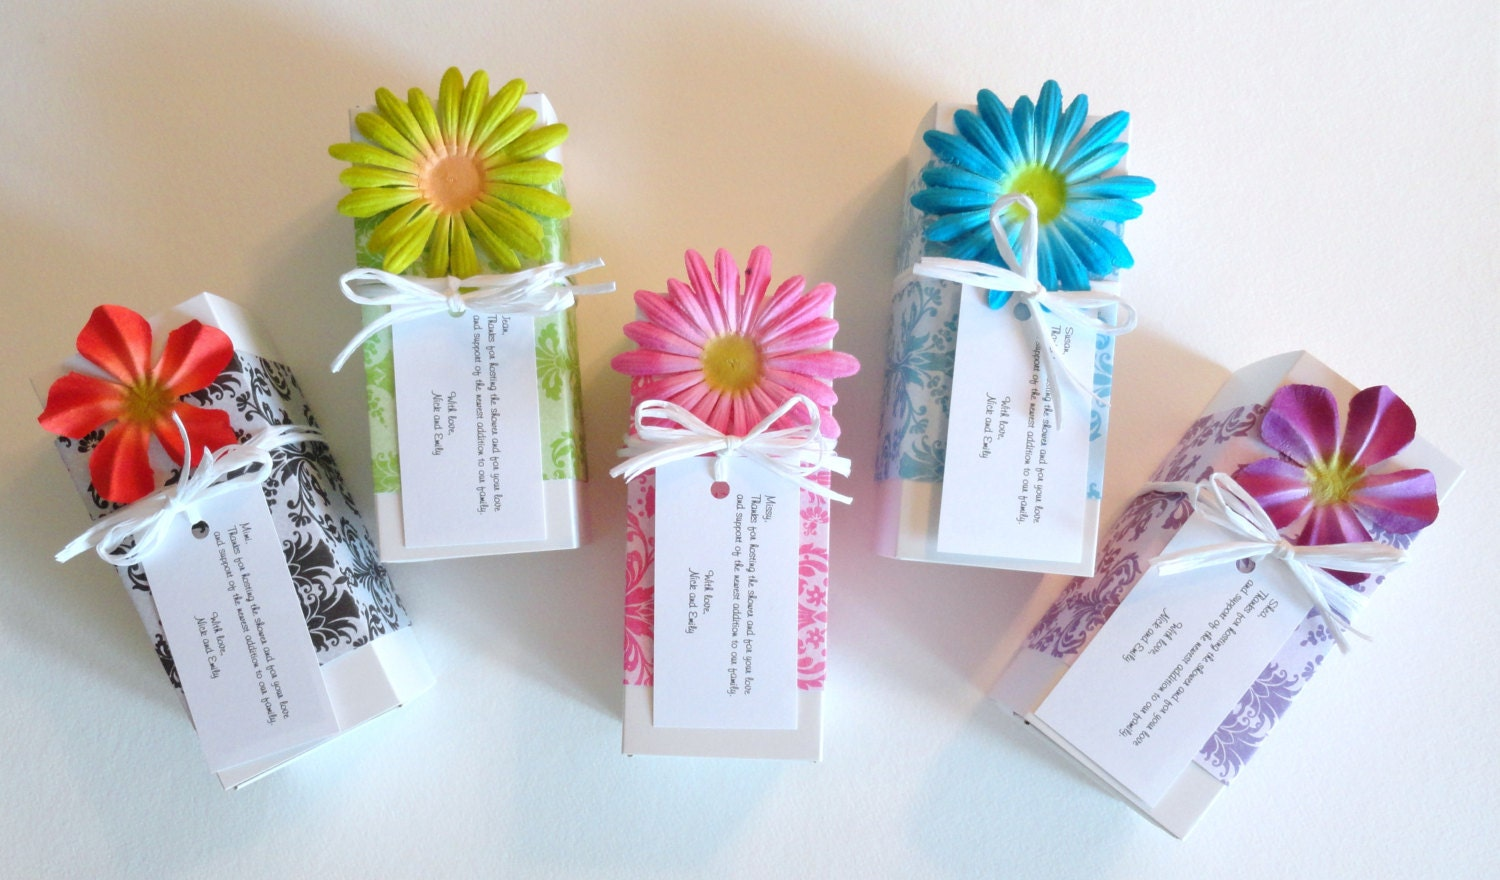 Baby Shower Hostess Gift Ideas Etsy : Hostess gifts handmade soap gift set by mimozahandcrafted